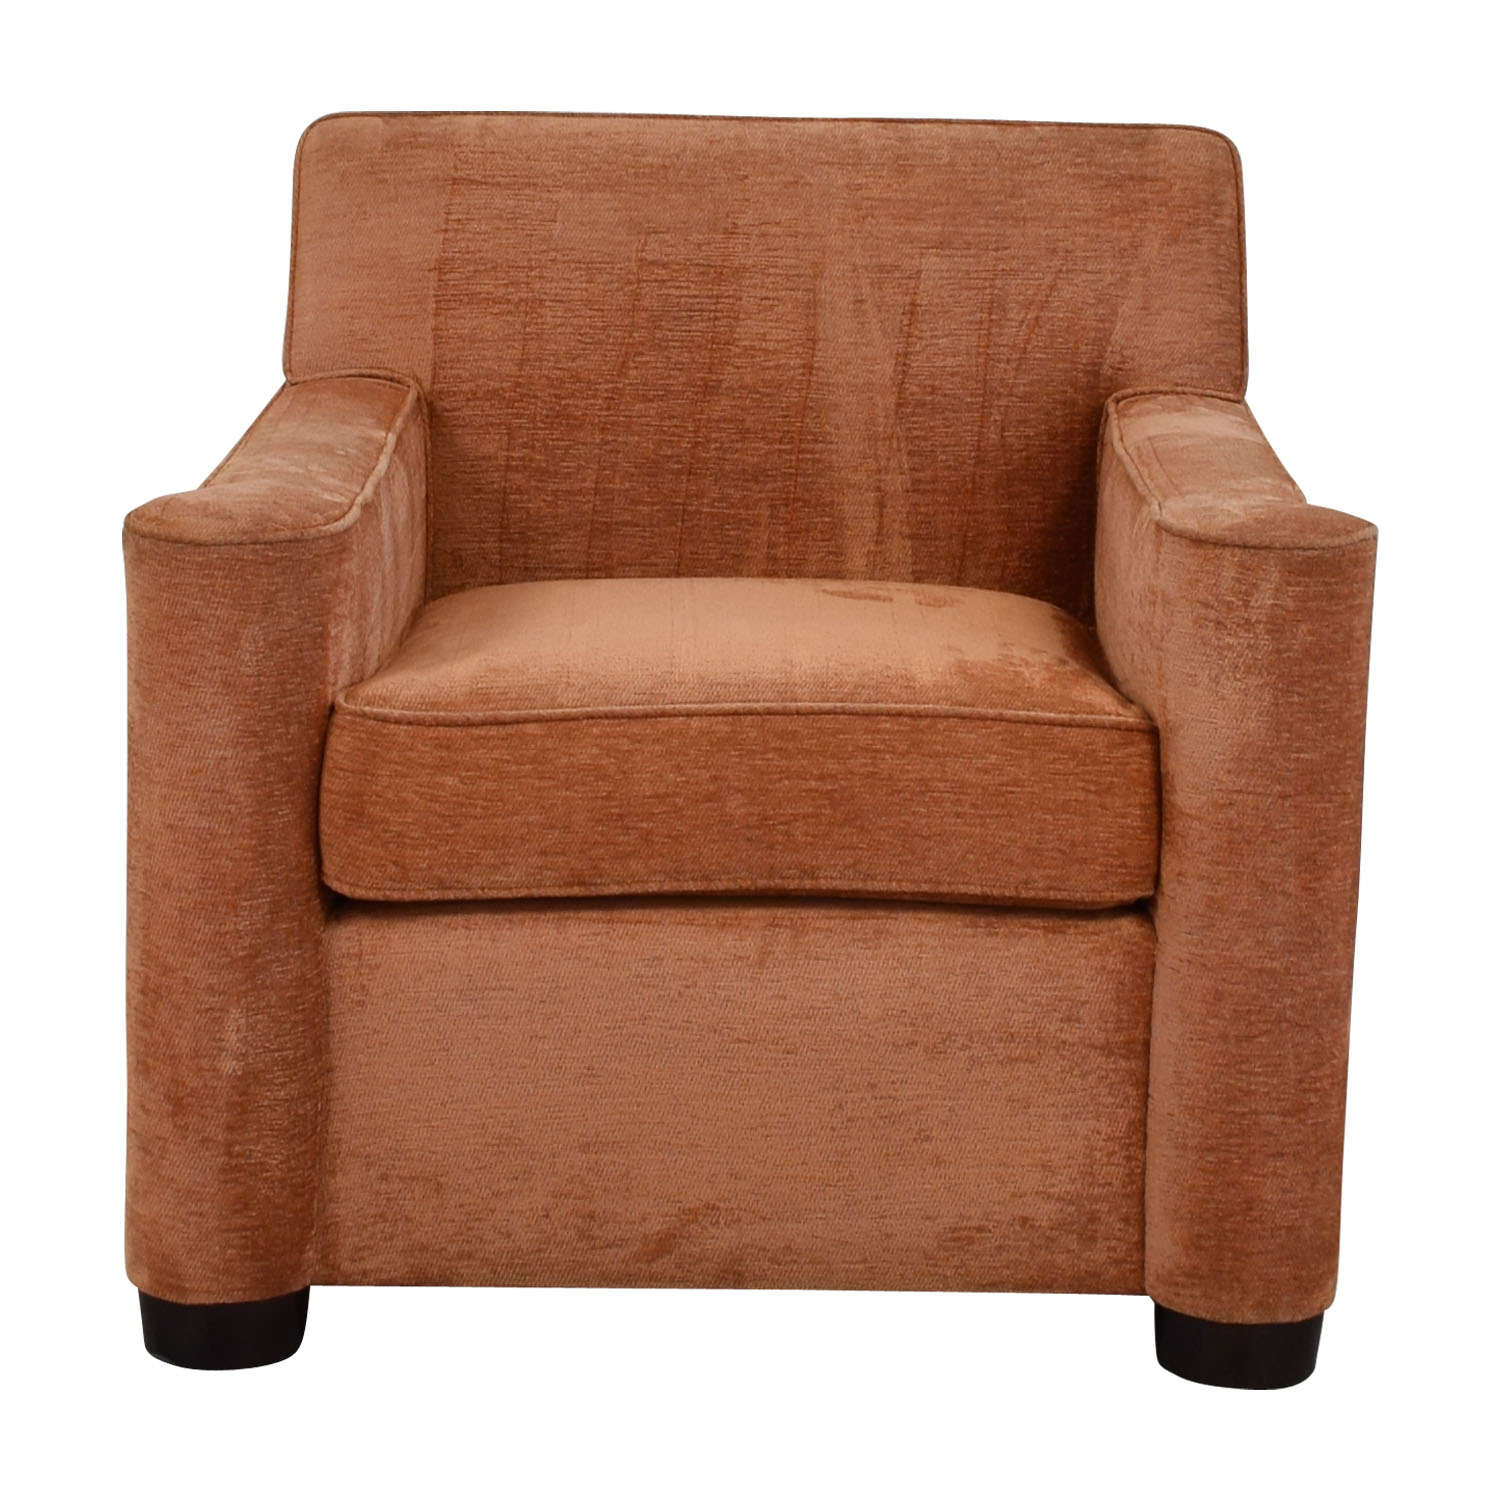 Furniture Masters Furniture Masters Brown Orange Upholstered Club Chair nyc